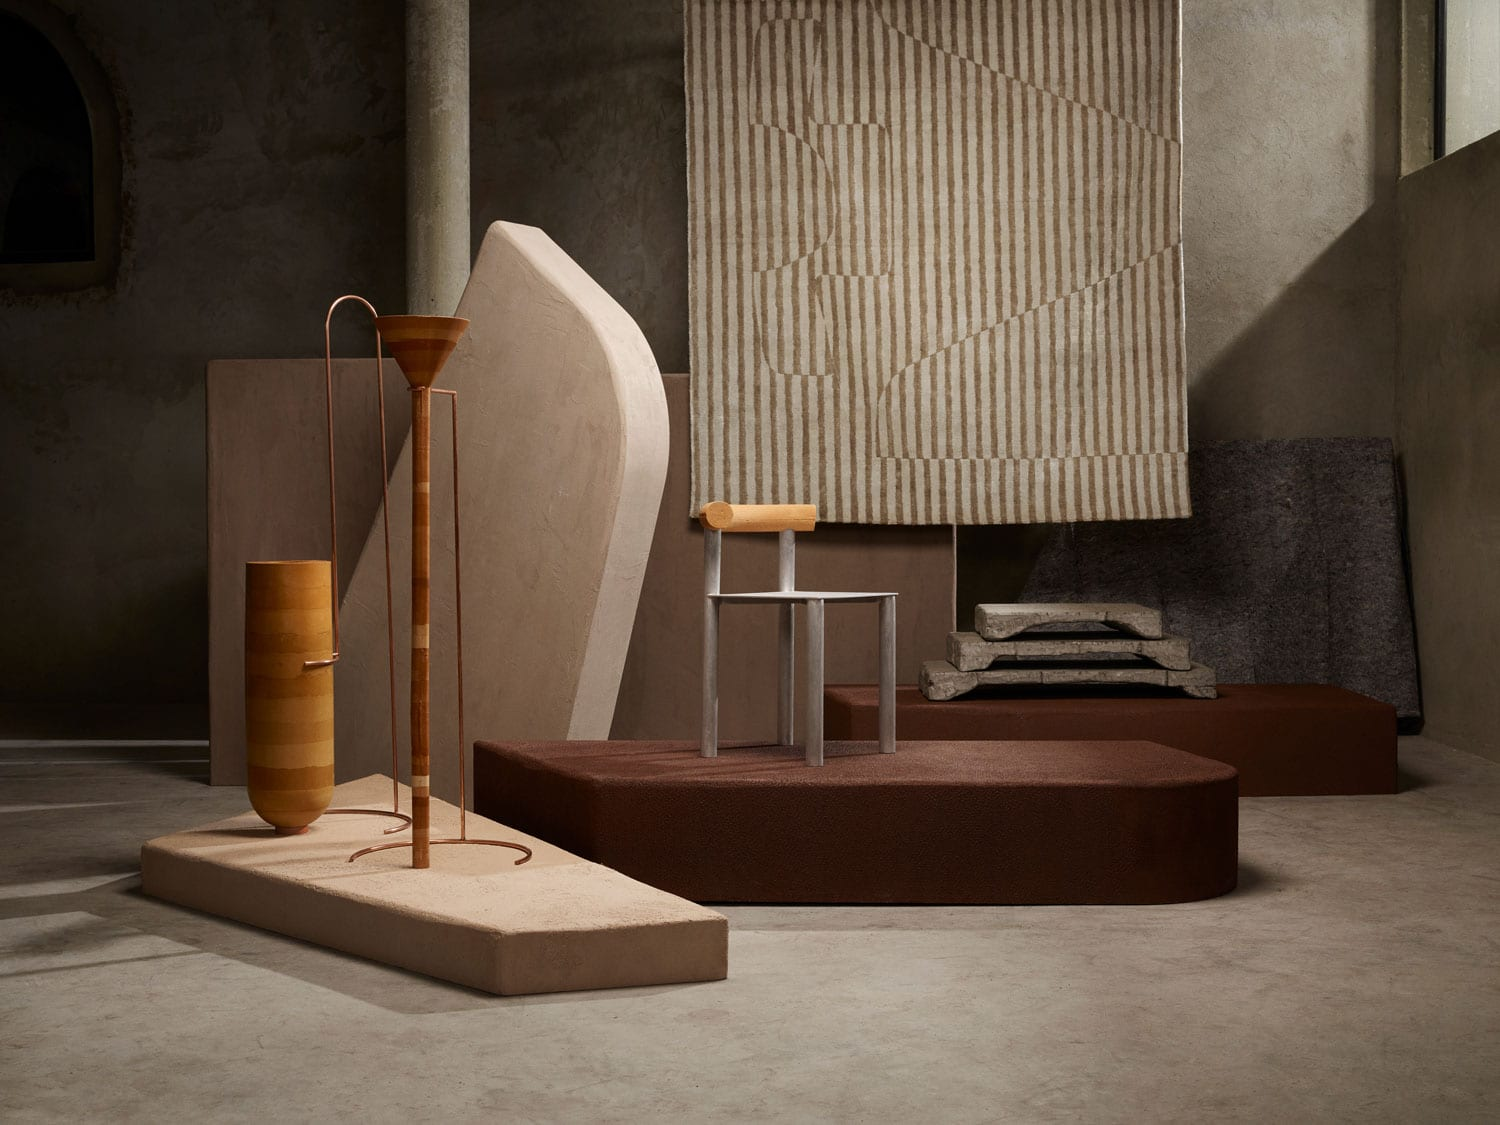 Collective Brut Explores Bodem Limited Edition Furniture Collection Photo Alexander Popelier Yellowtrace 09